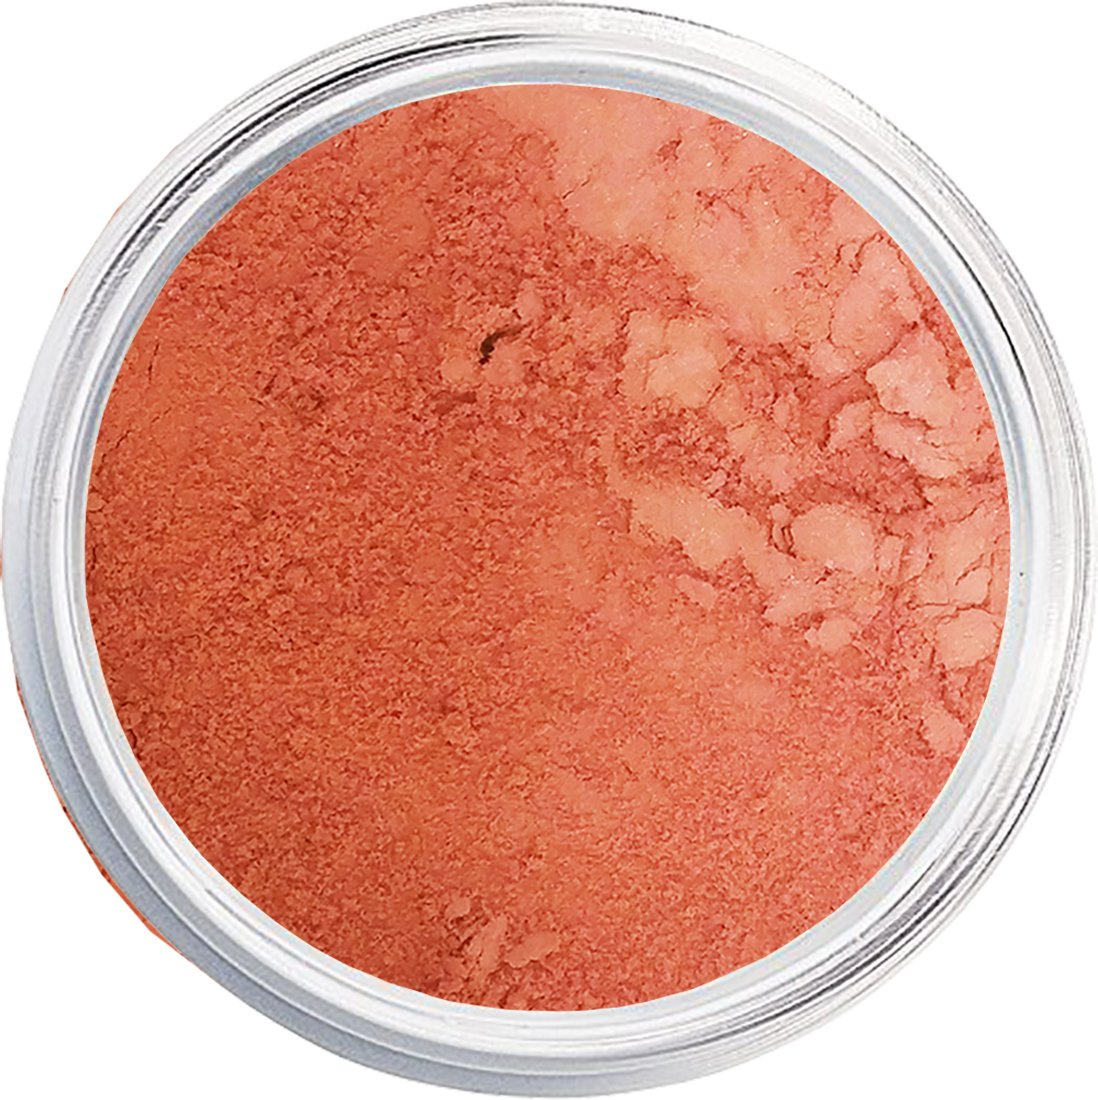 Mineral Tucson Mall Max 84% OFF Blush Makeup Rich by Giselle Cos Girl